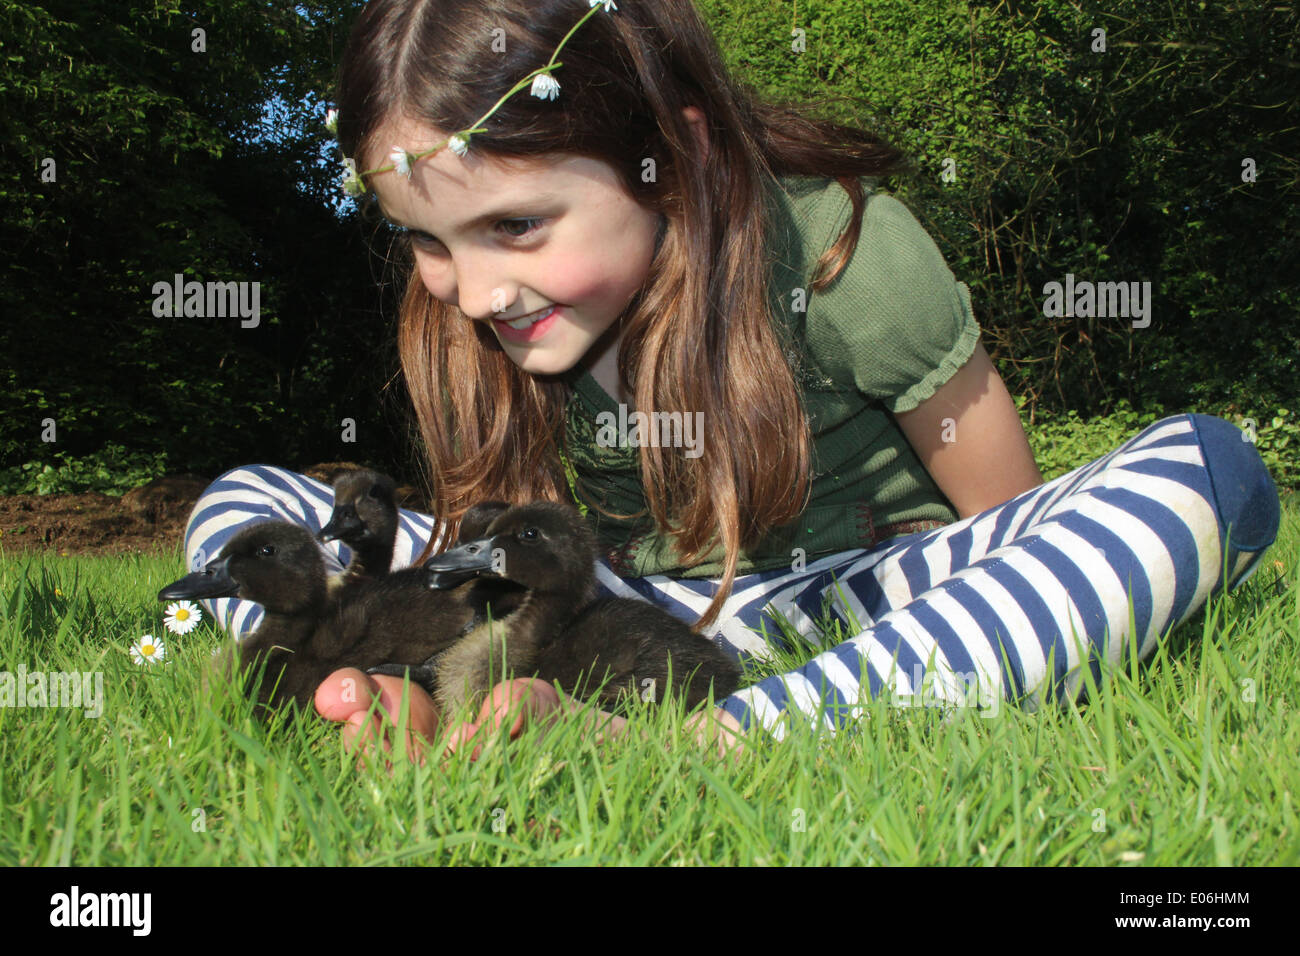 Portrait of eight old girl with a daisy chain playing with her pet cayuga ducklings Anas platyrhynchos domesticus, uk - Stock Image